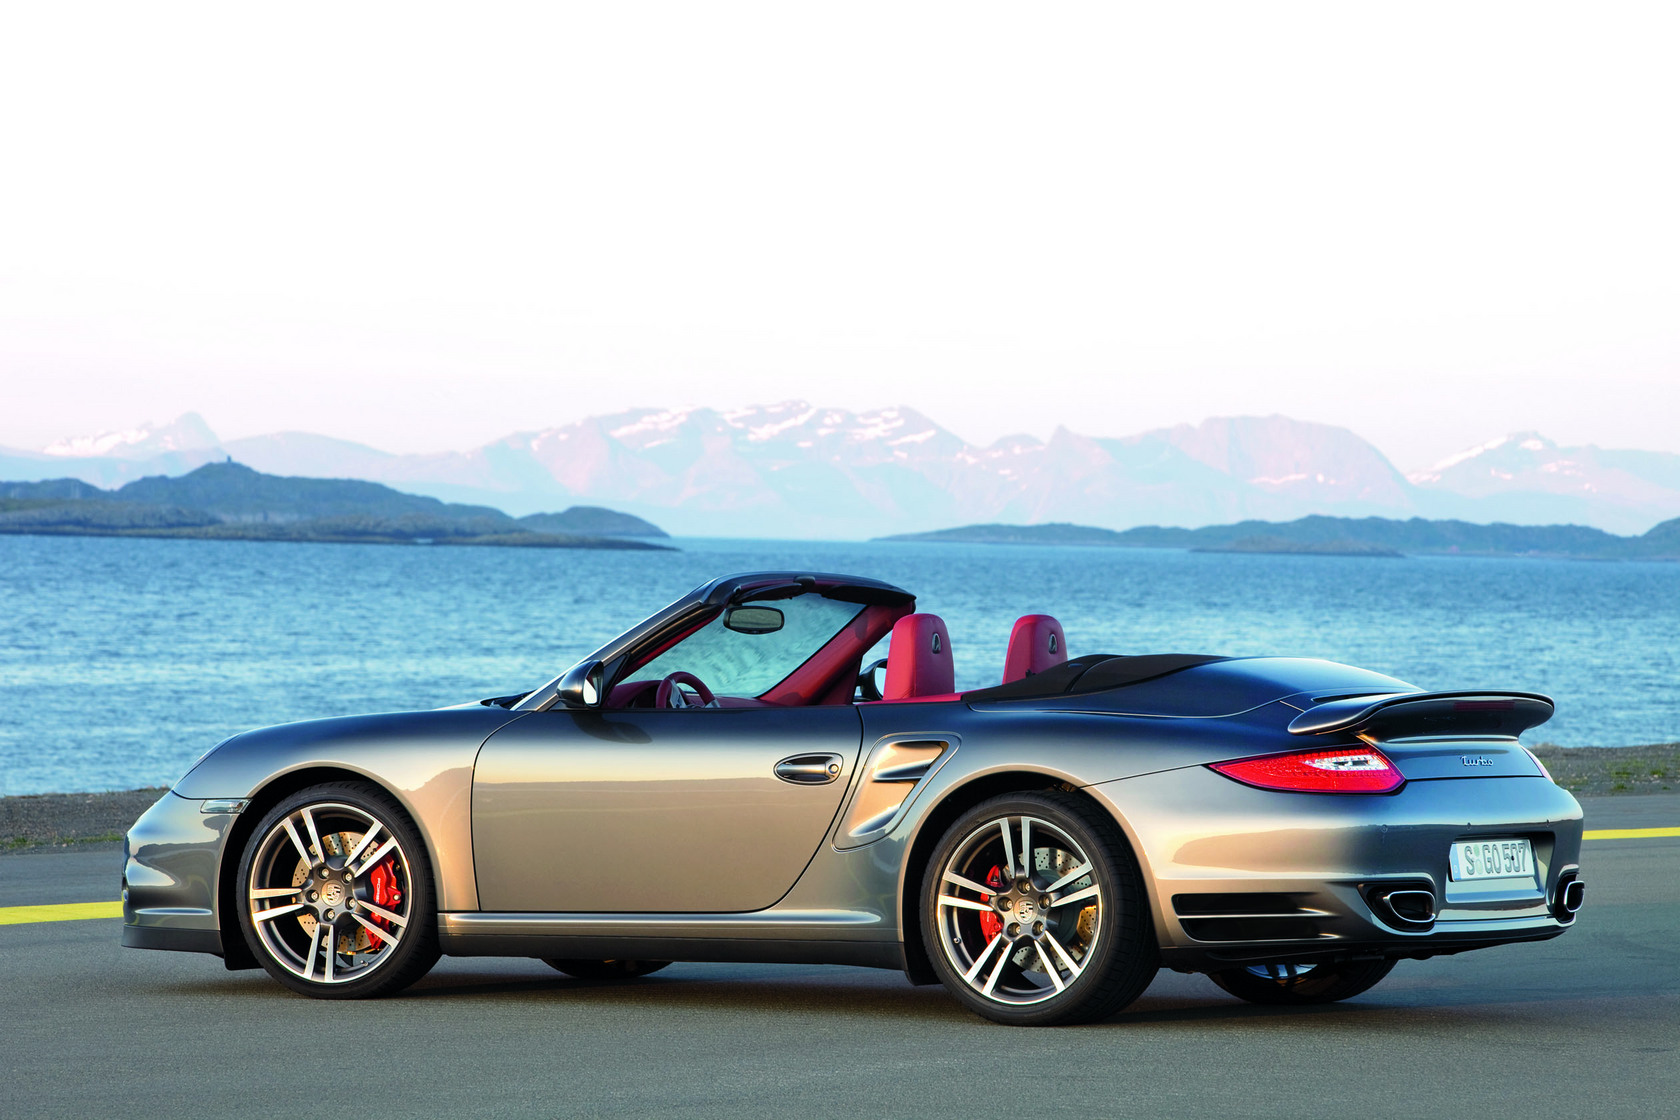 Porsche 911 Turbo Cabrio 2009 Auto Wallpapers GroenLicht.be